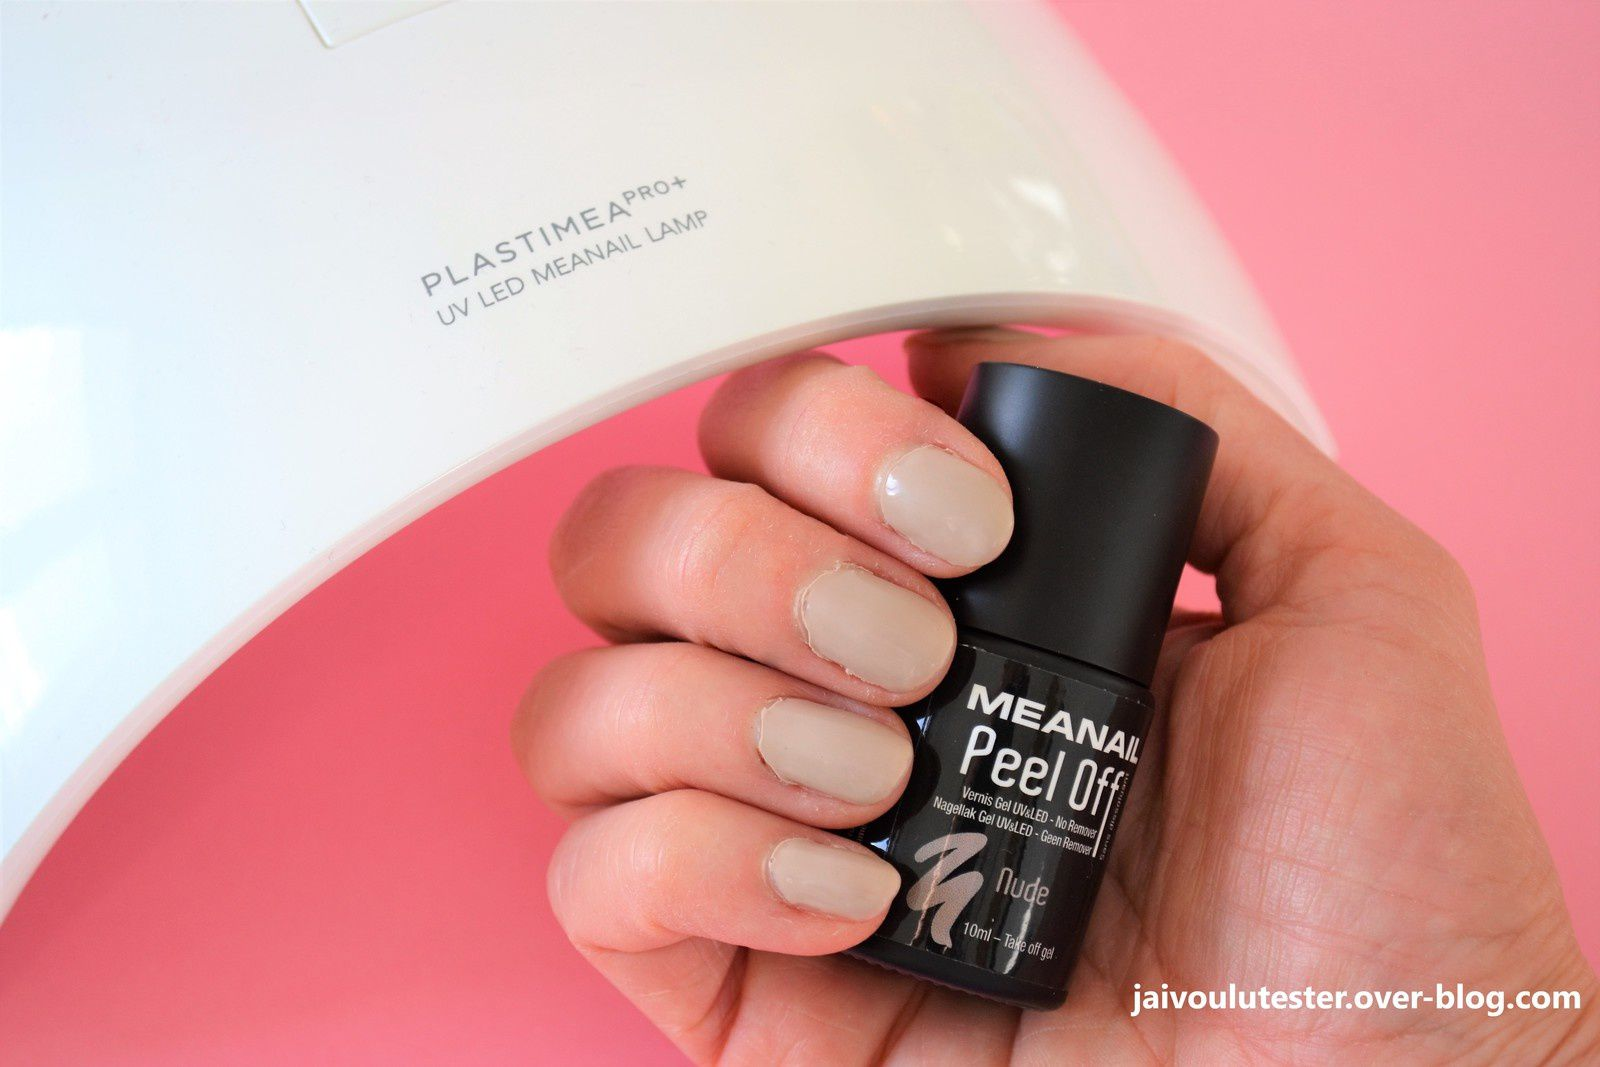 ... le vernis Meanail Peel Off, à ôter sans dissolvant? Crash test